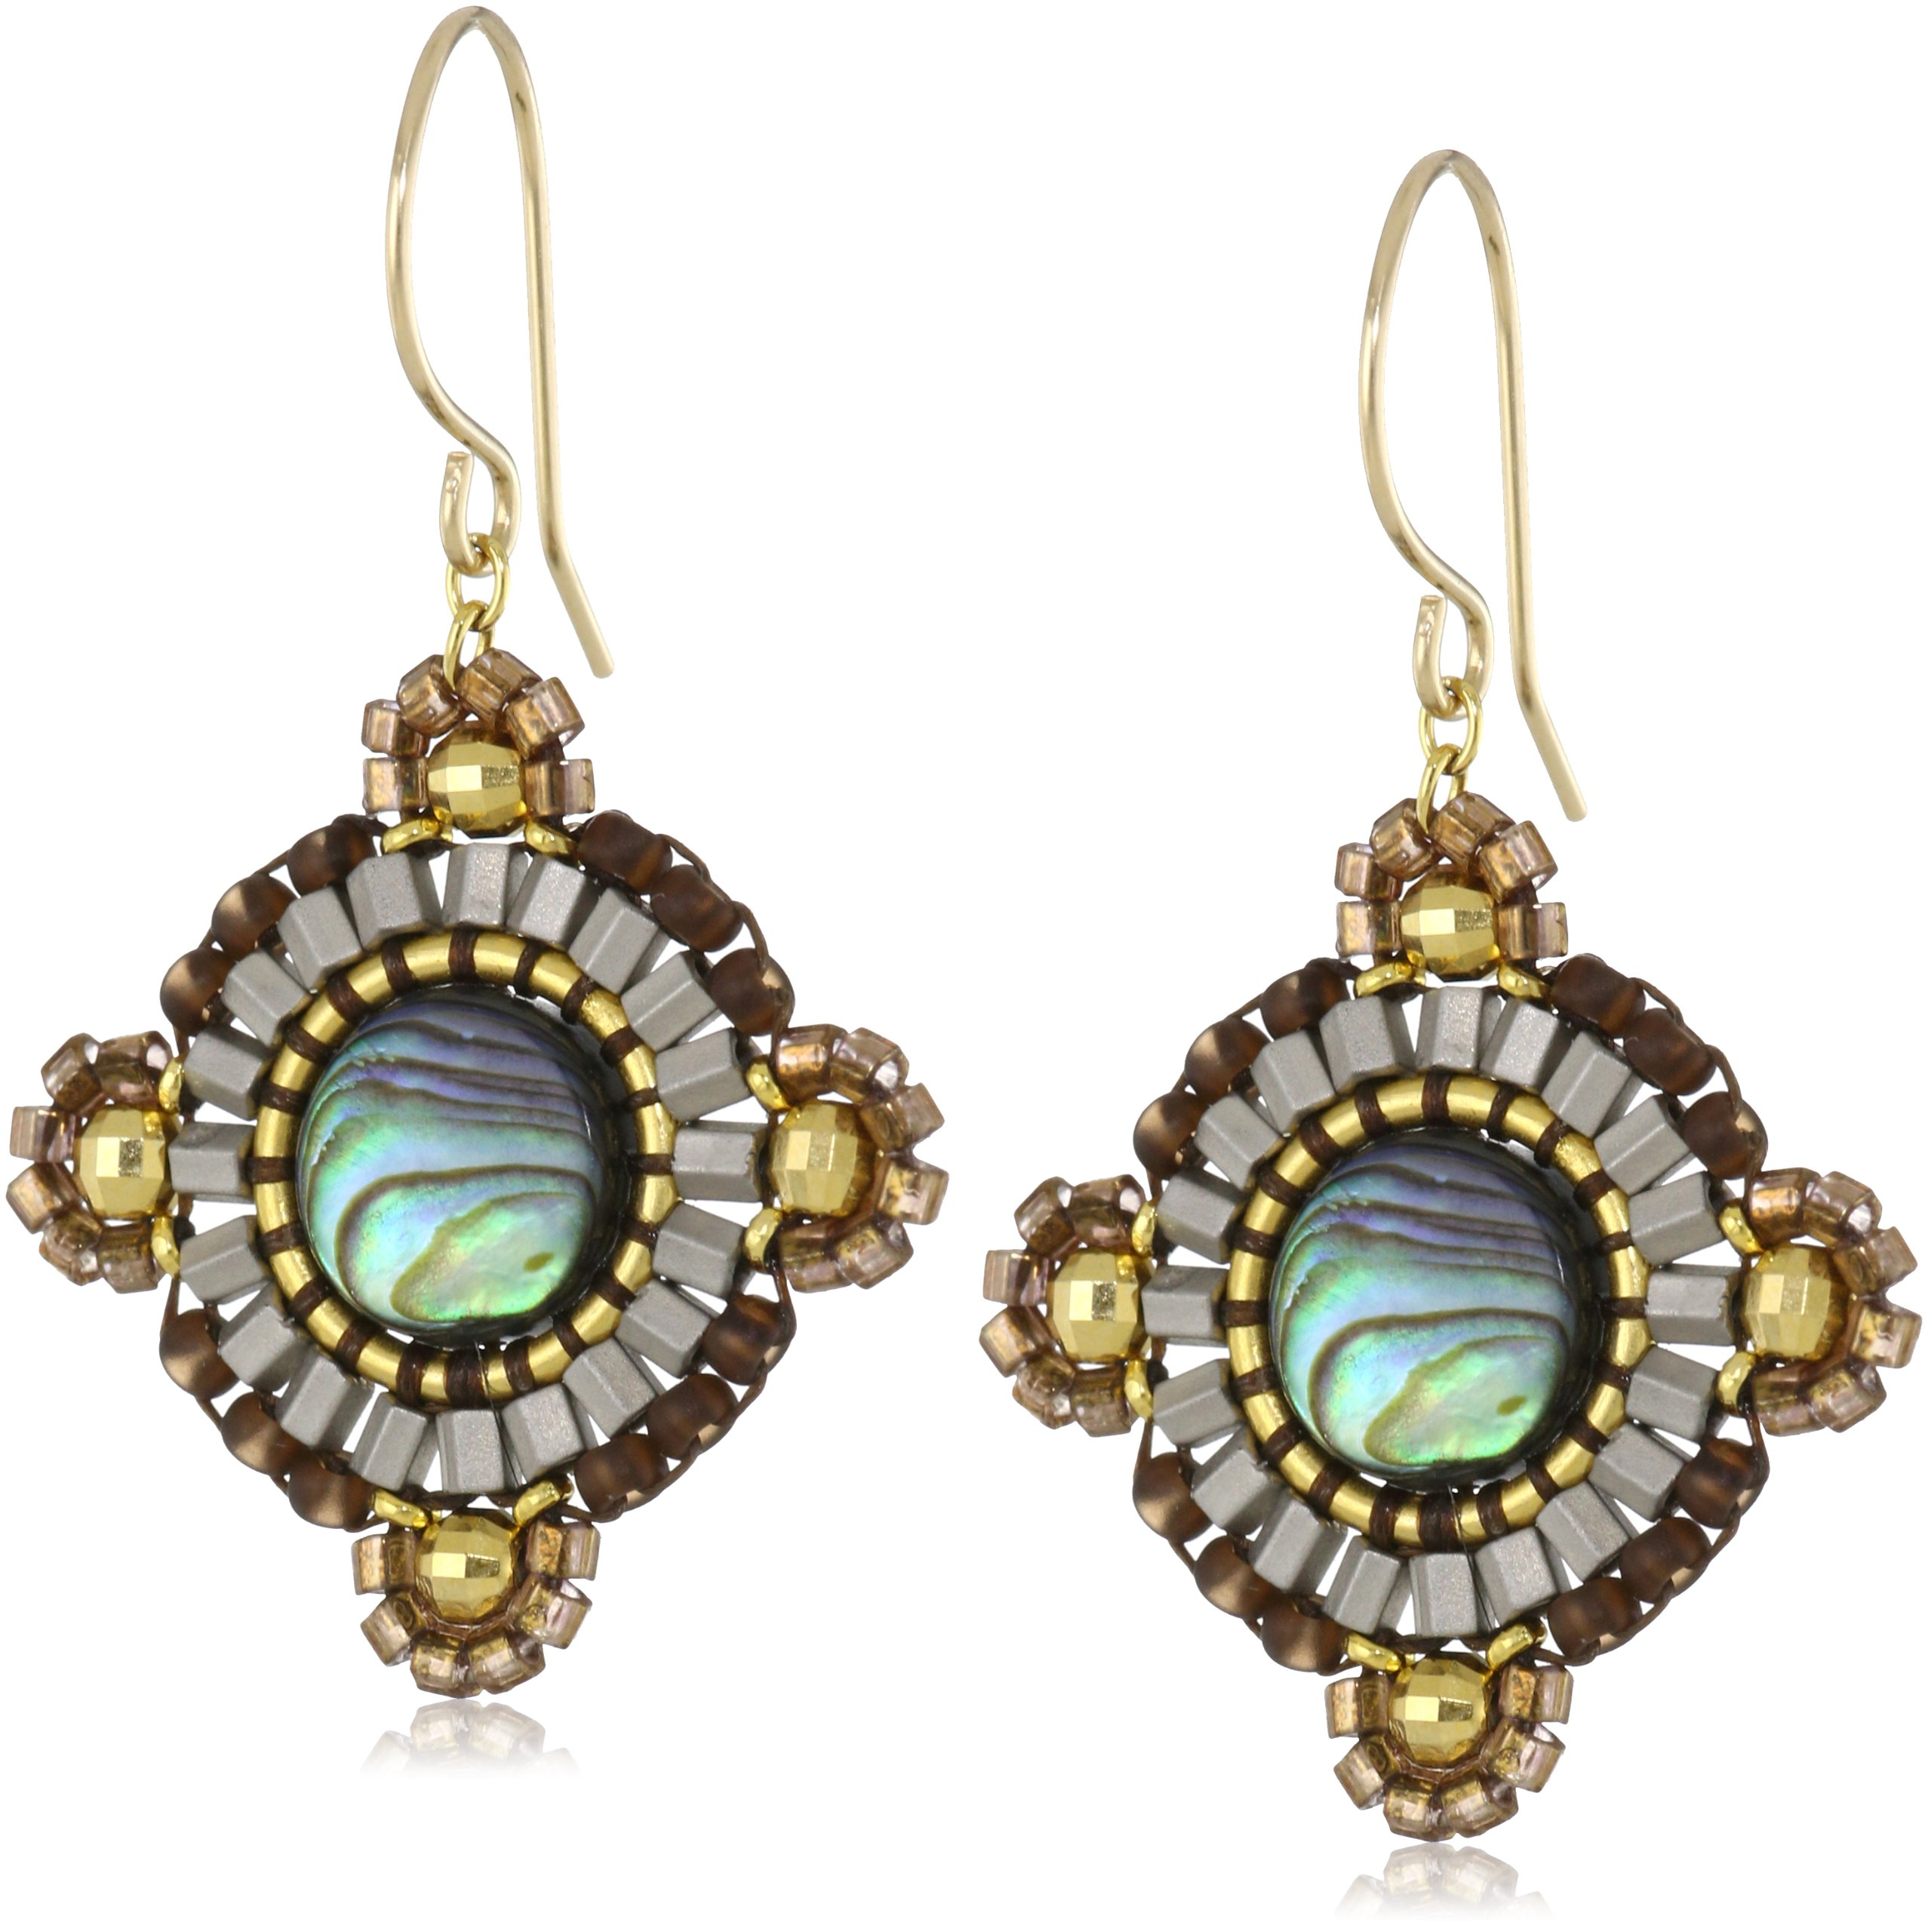 Miguel Ases Abalone Small Circular Earrings